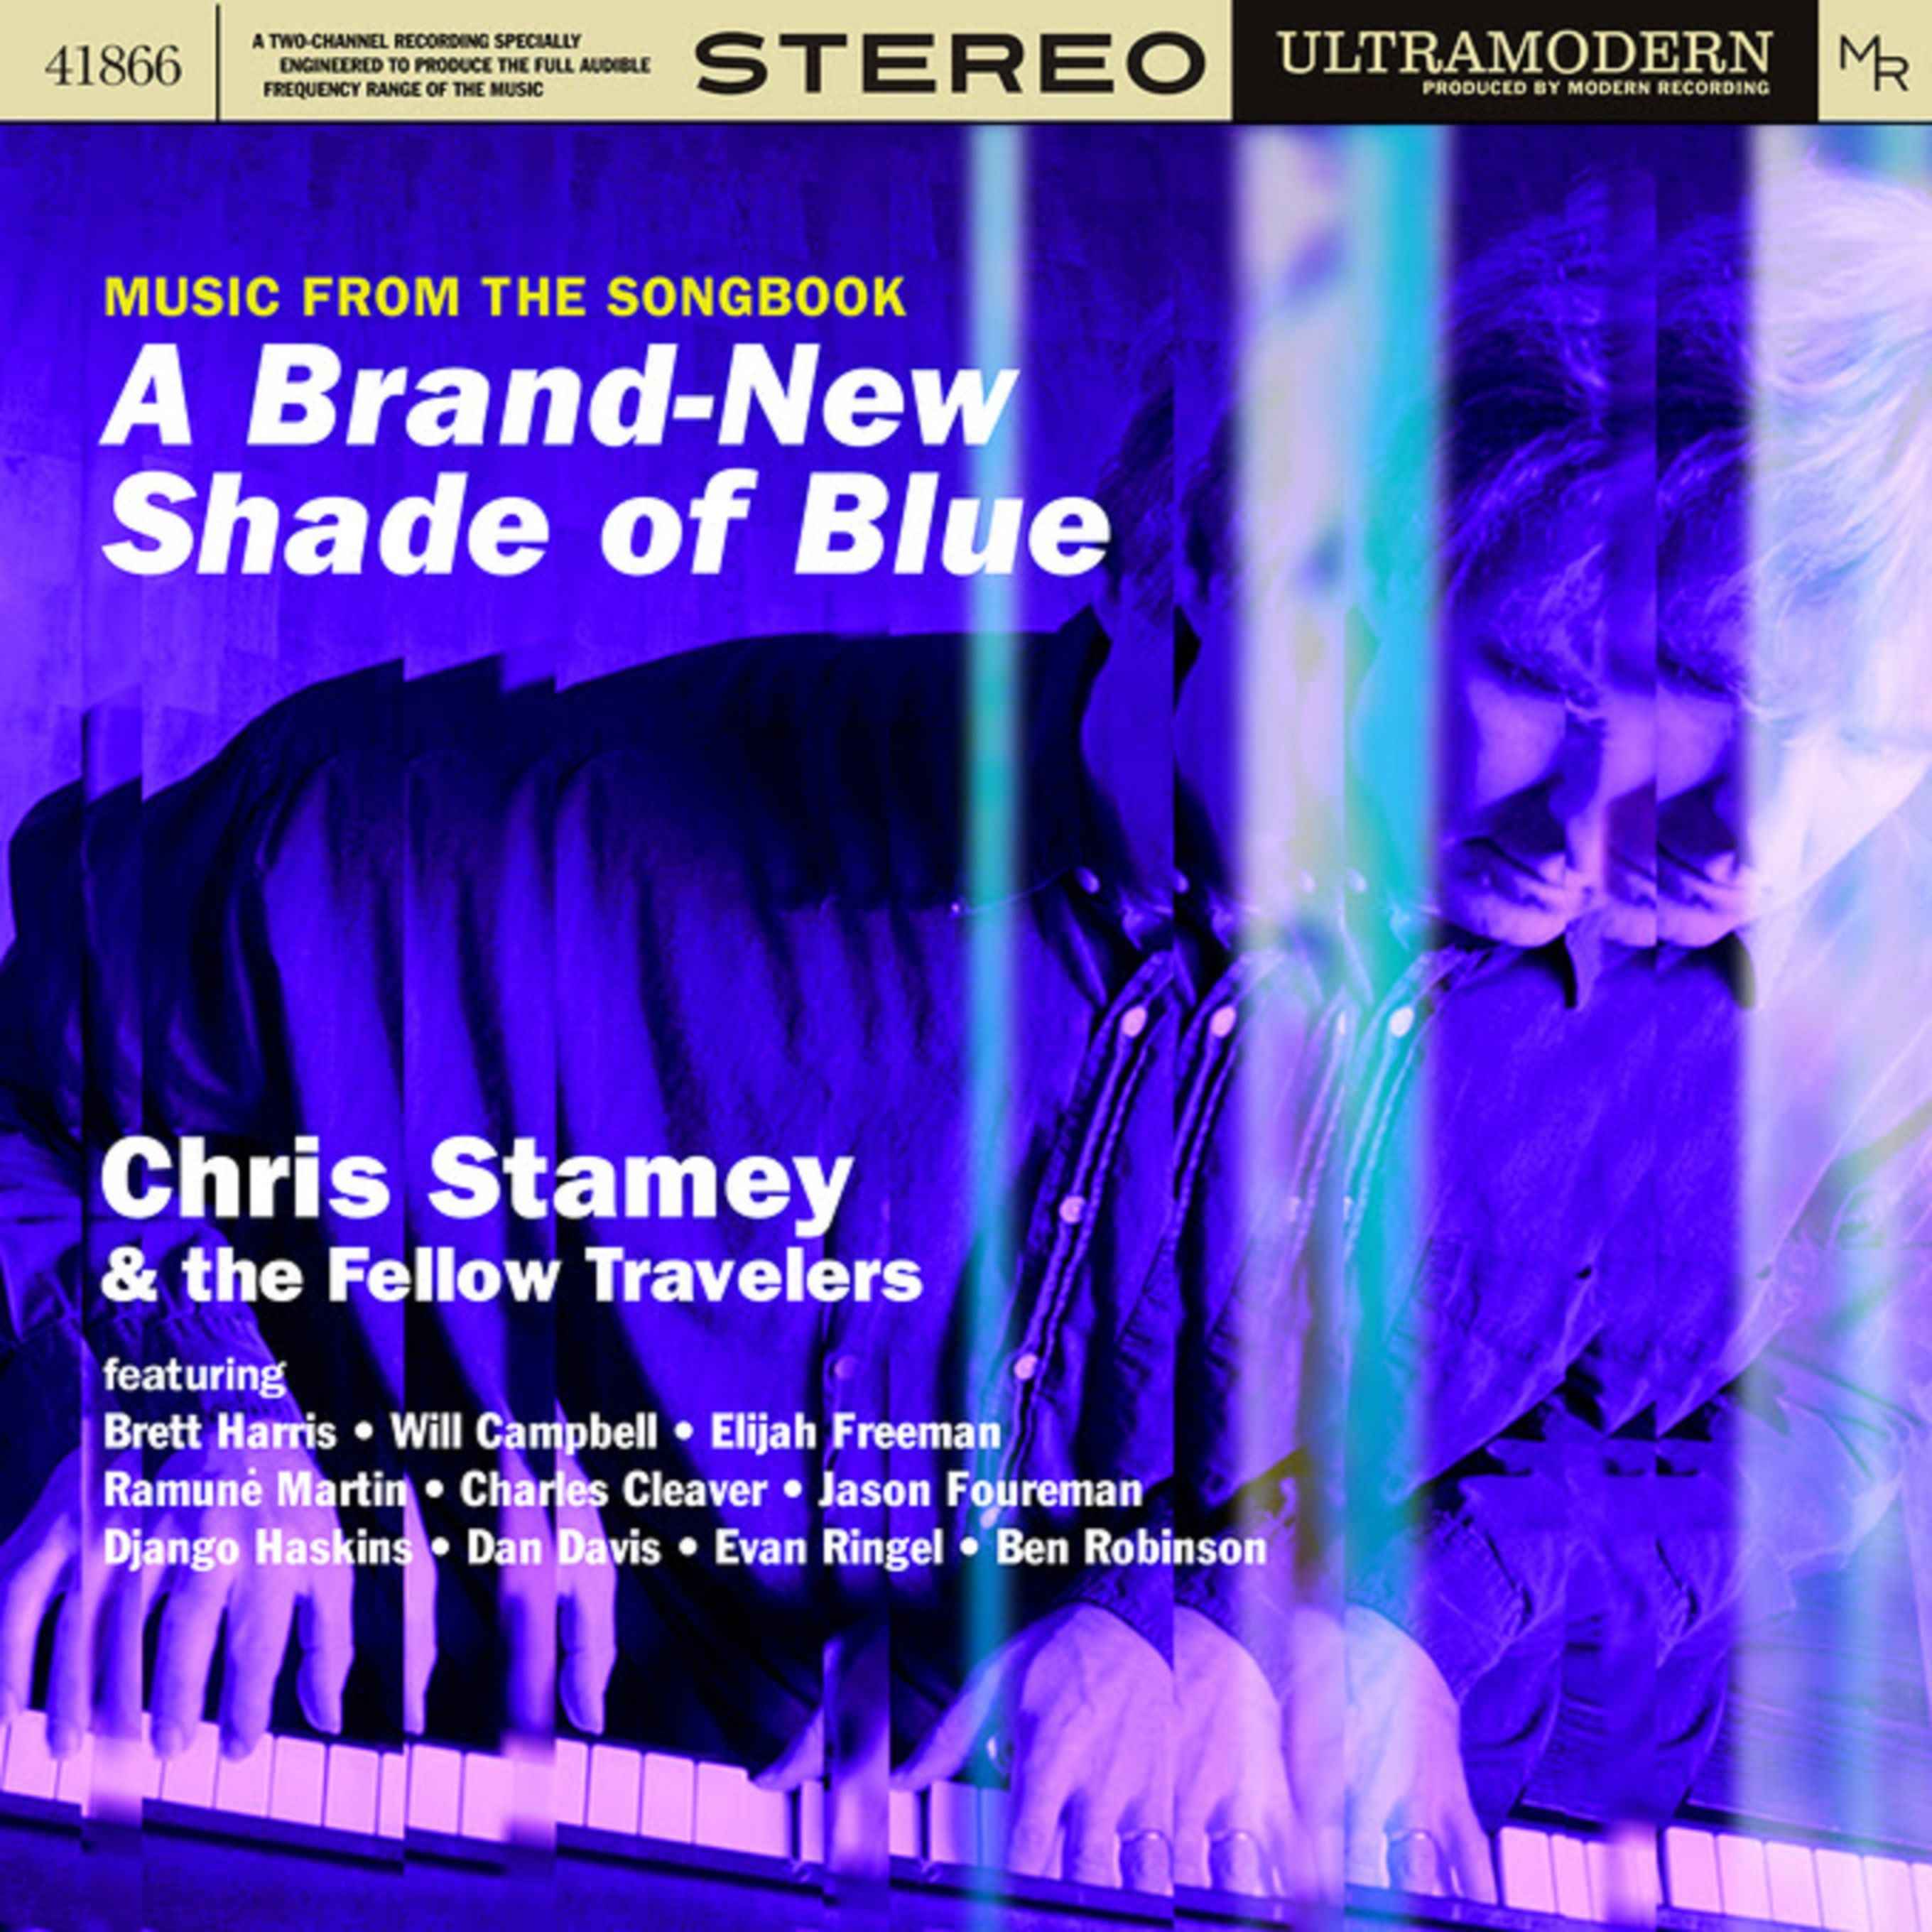 Chris Stamey & the Fellow Travelers' 'A Brand New Shade of Blue